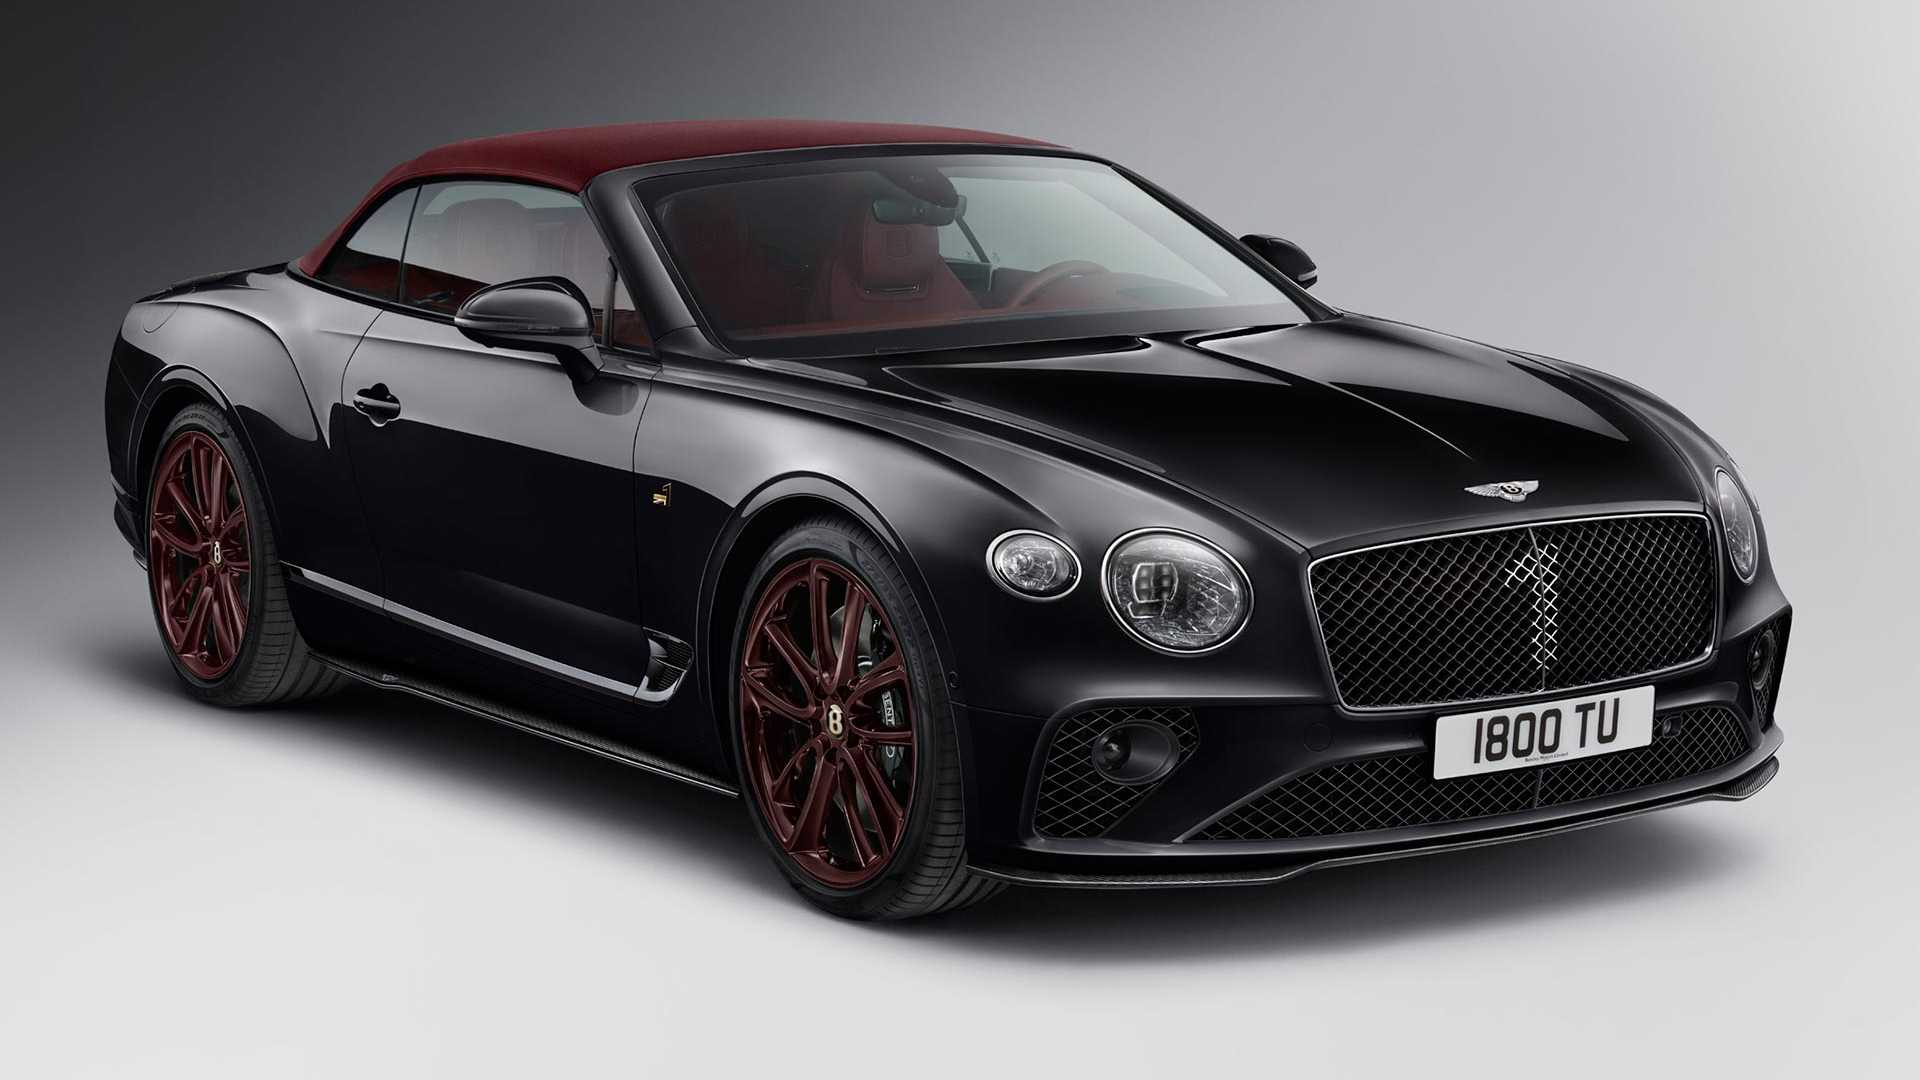 2020 Bentley Continental GT Convertible Number 1 Edition by Mulliner Front Three-Quarter Wallpapers (6)